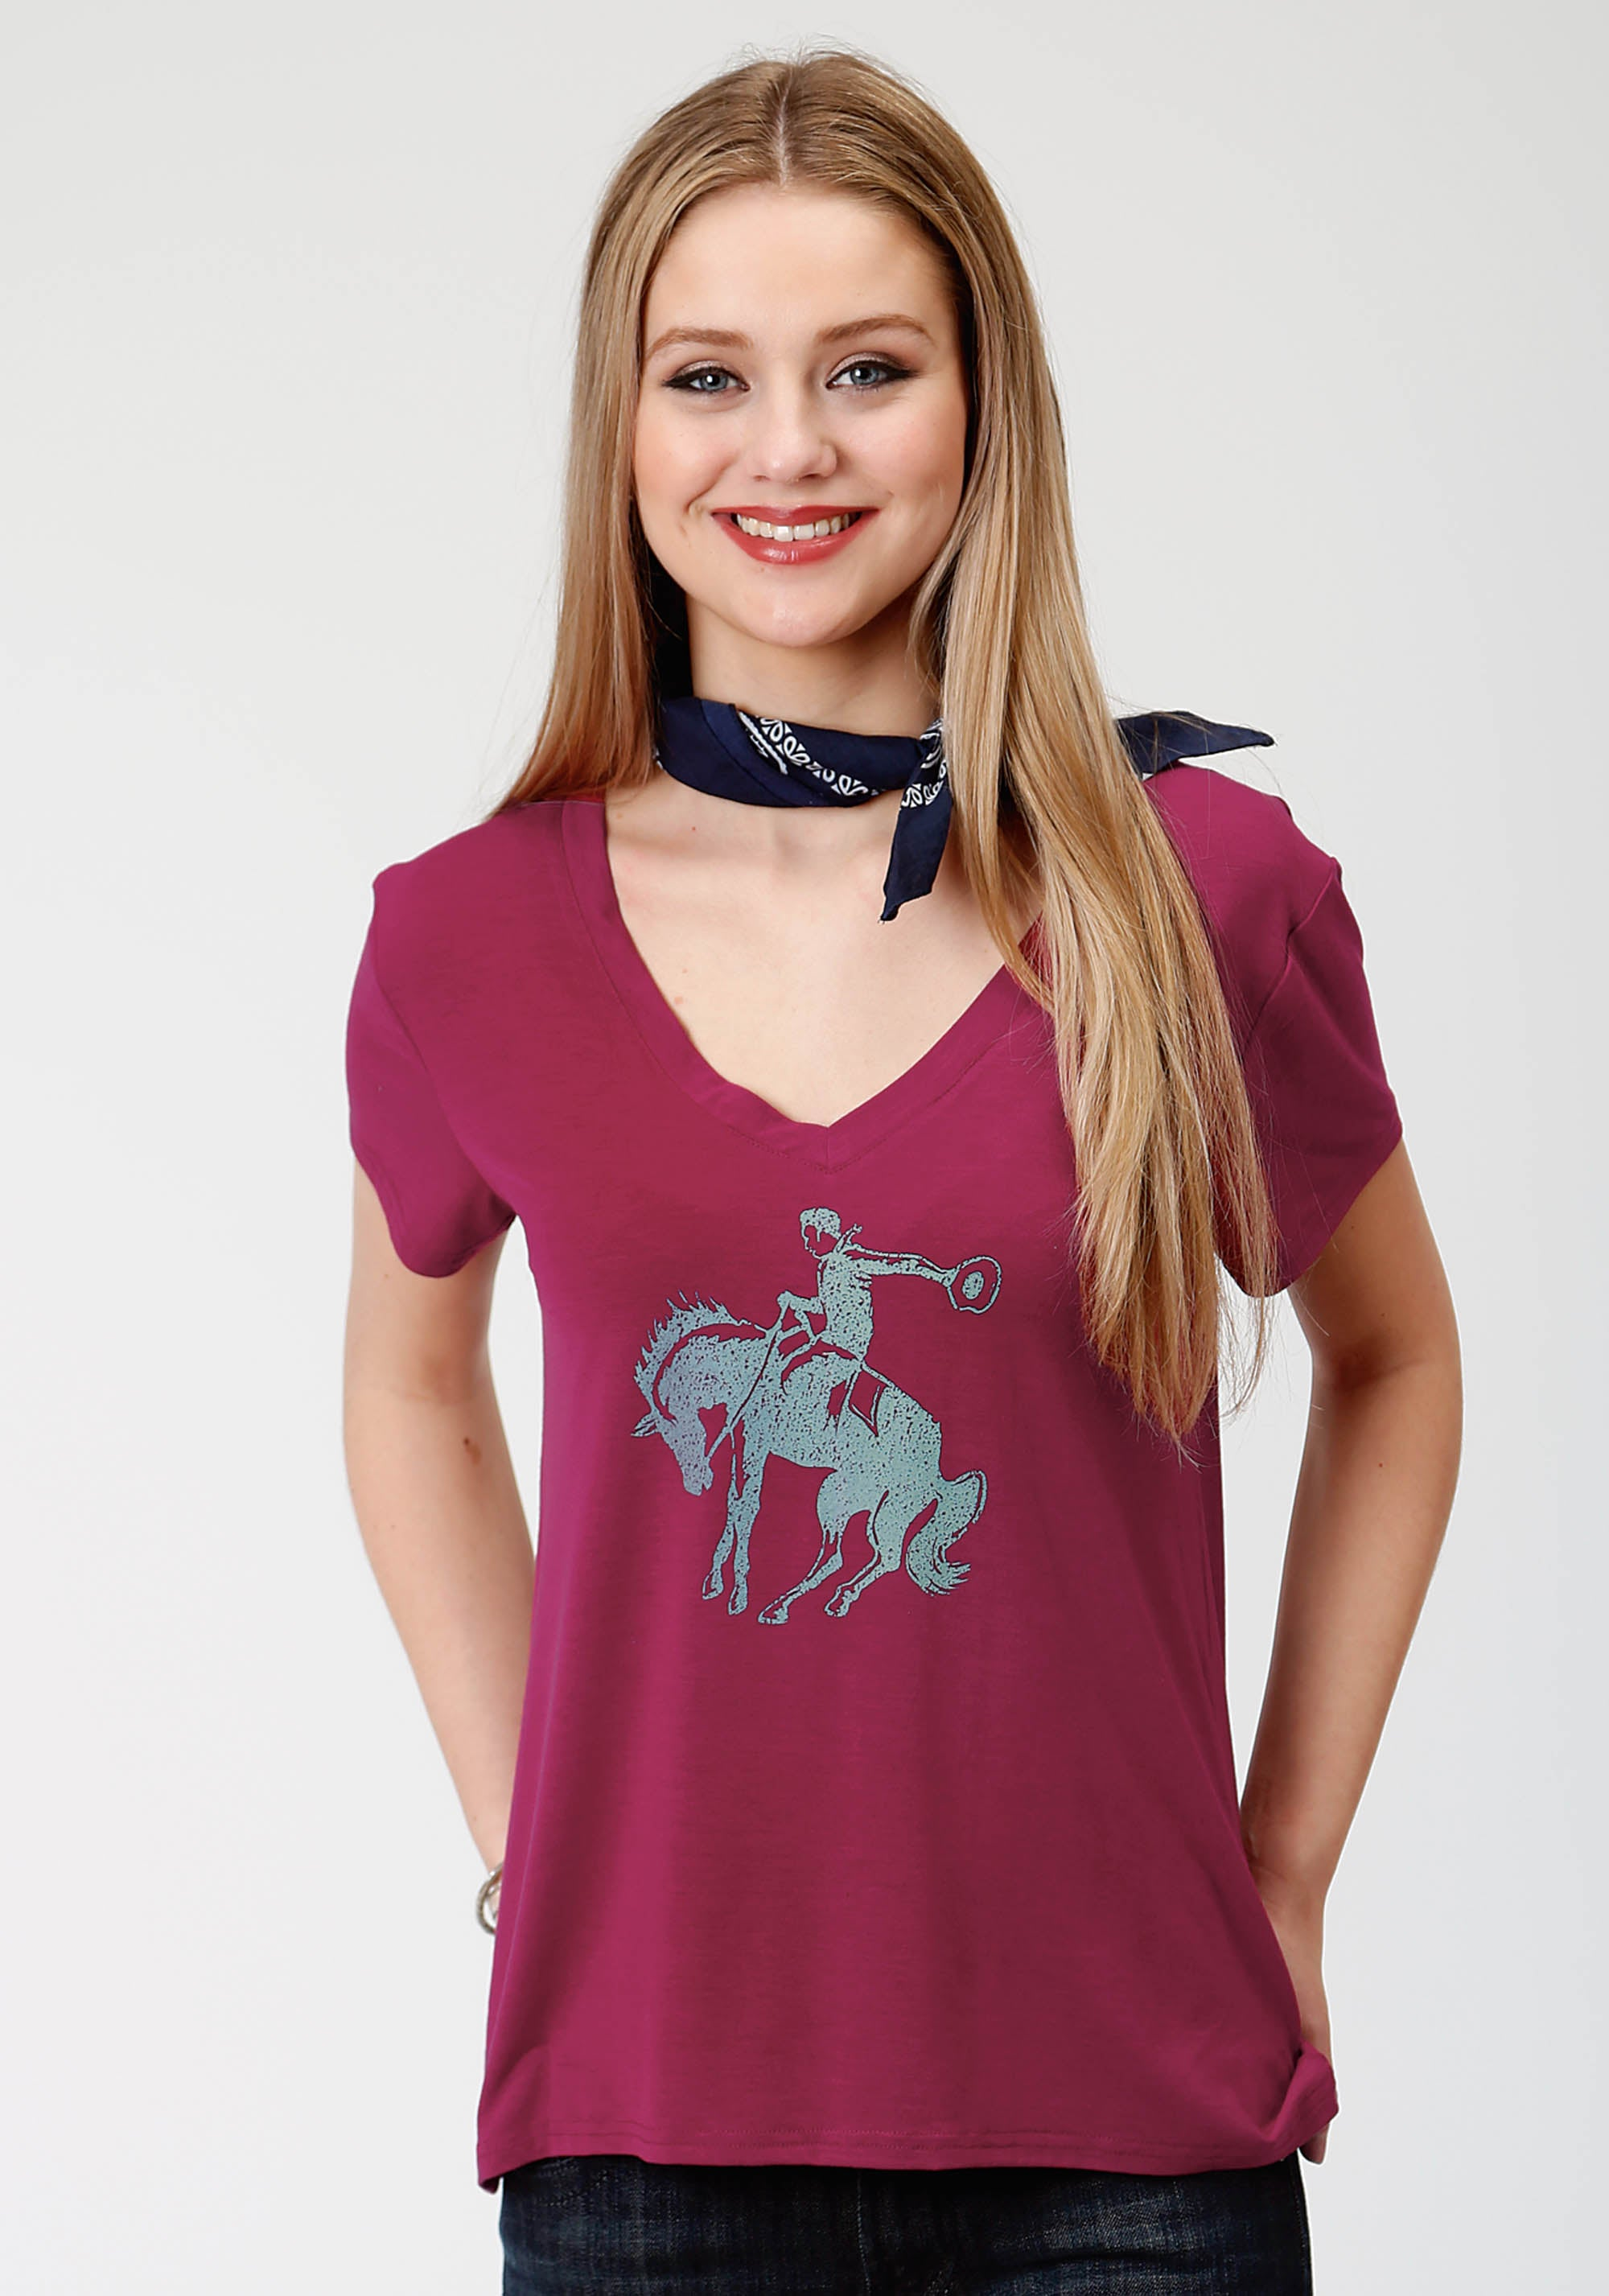 ROPER WOMENS RED 3675 P/R JERSEY V NECK TEE FIVE STAR- WINTER I SHORT SLEEVE